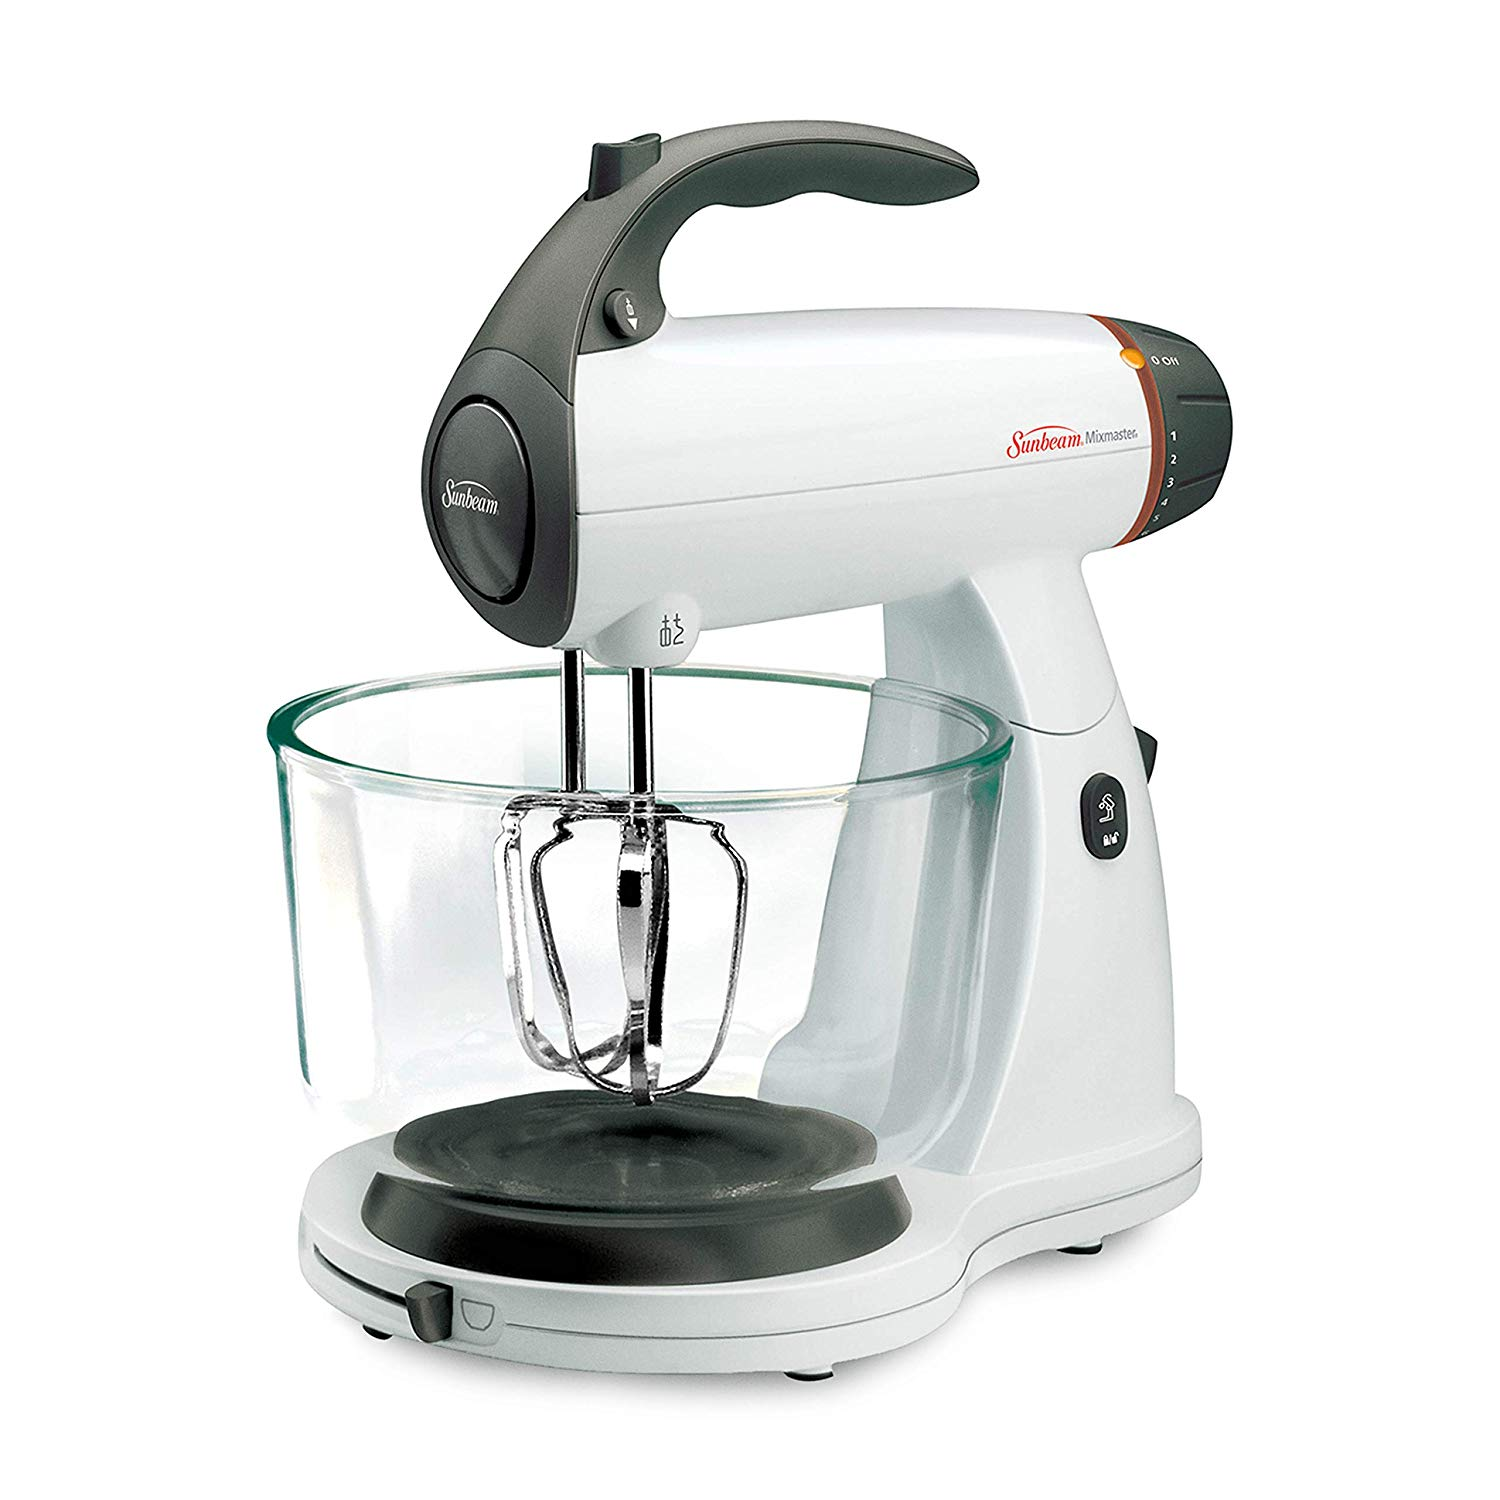 top performing stand mixer below $100